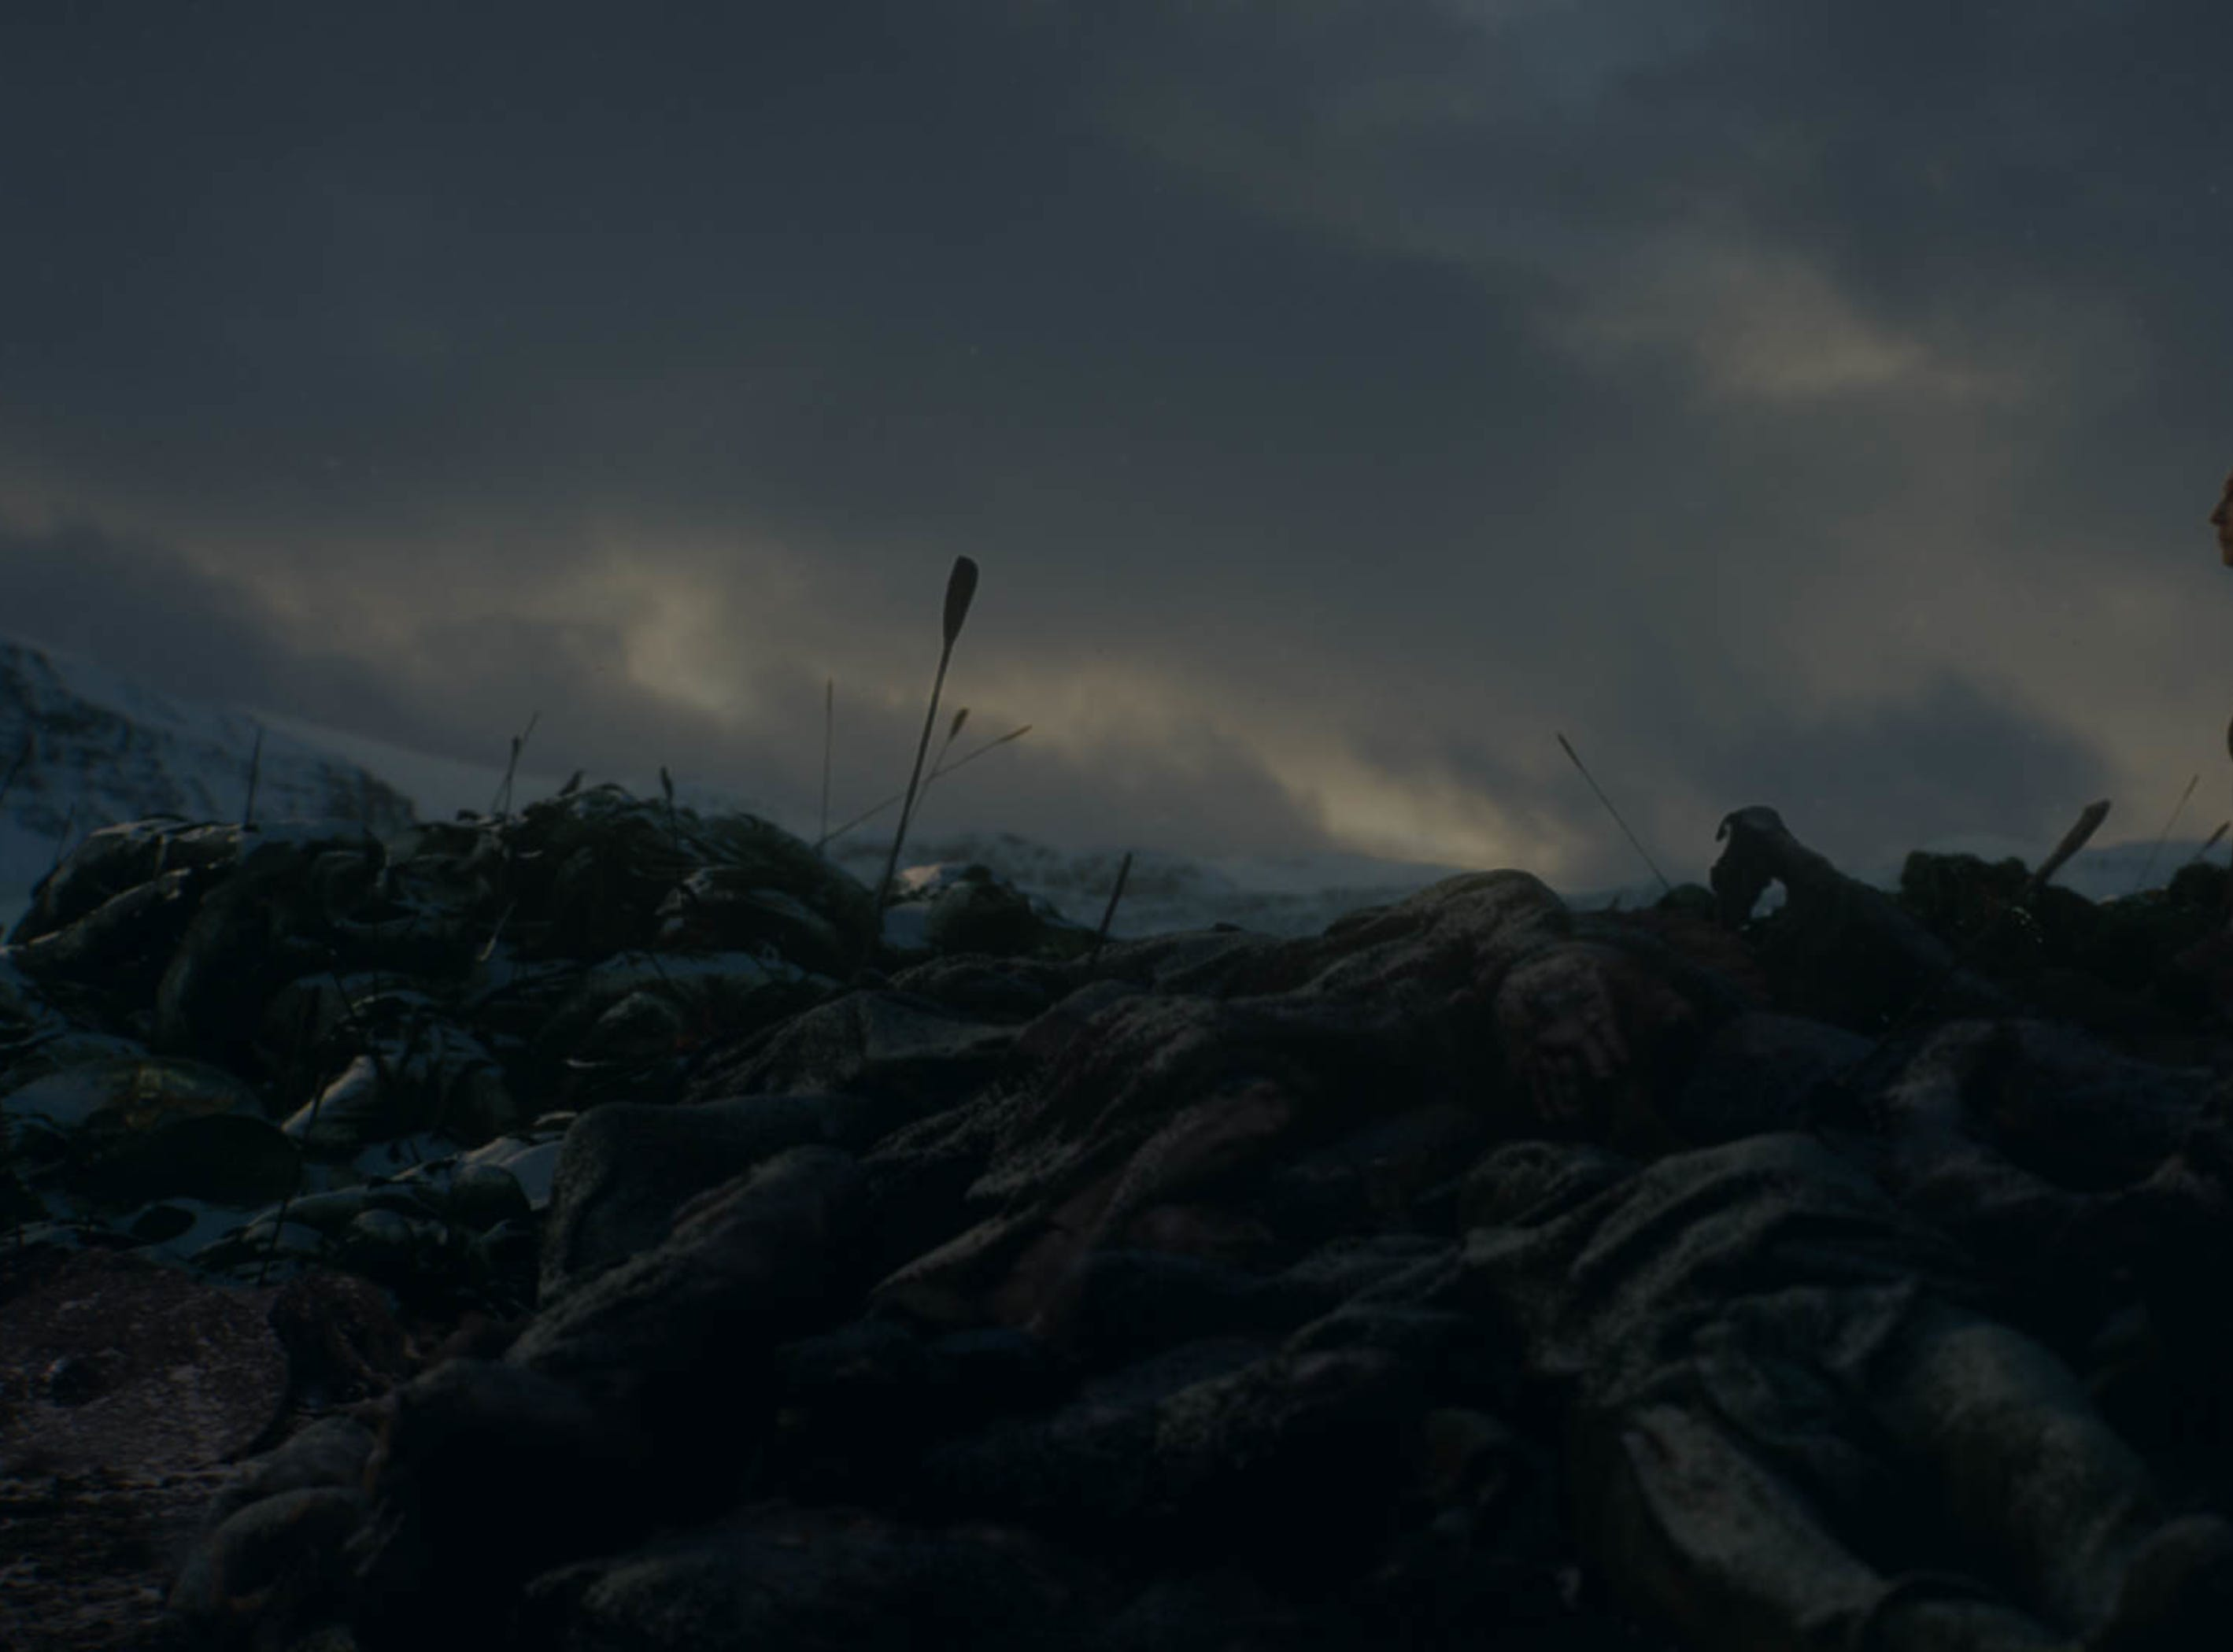 Her mission completed, Melisandre (Carice van Houten) leaves Winterfell on HBO's 'Game of Thrones.'